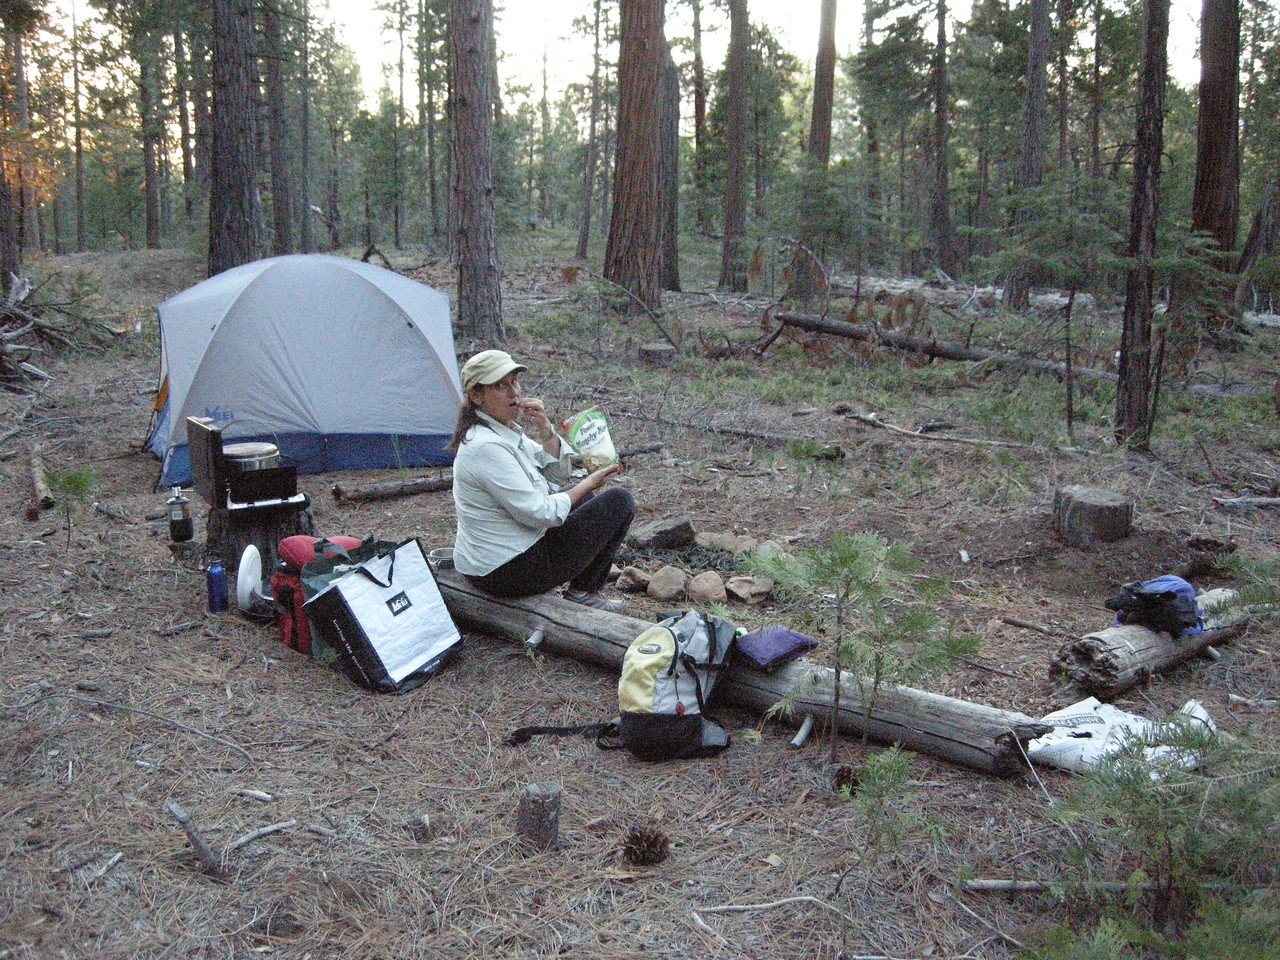 Dry-camping in the National Forest just outside Yosemite National Park along the Evergreen Road near Mather.